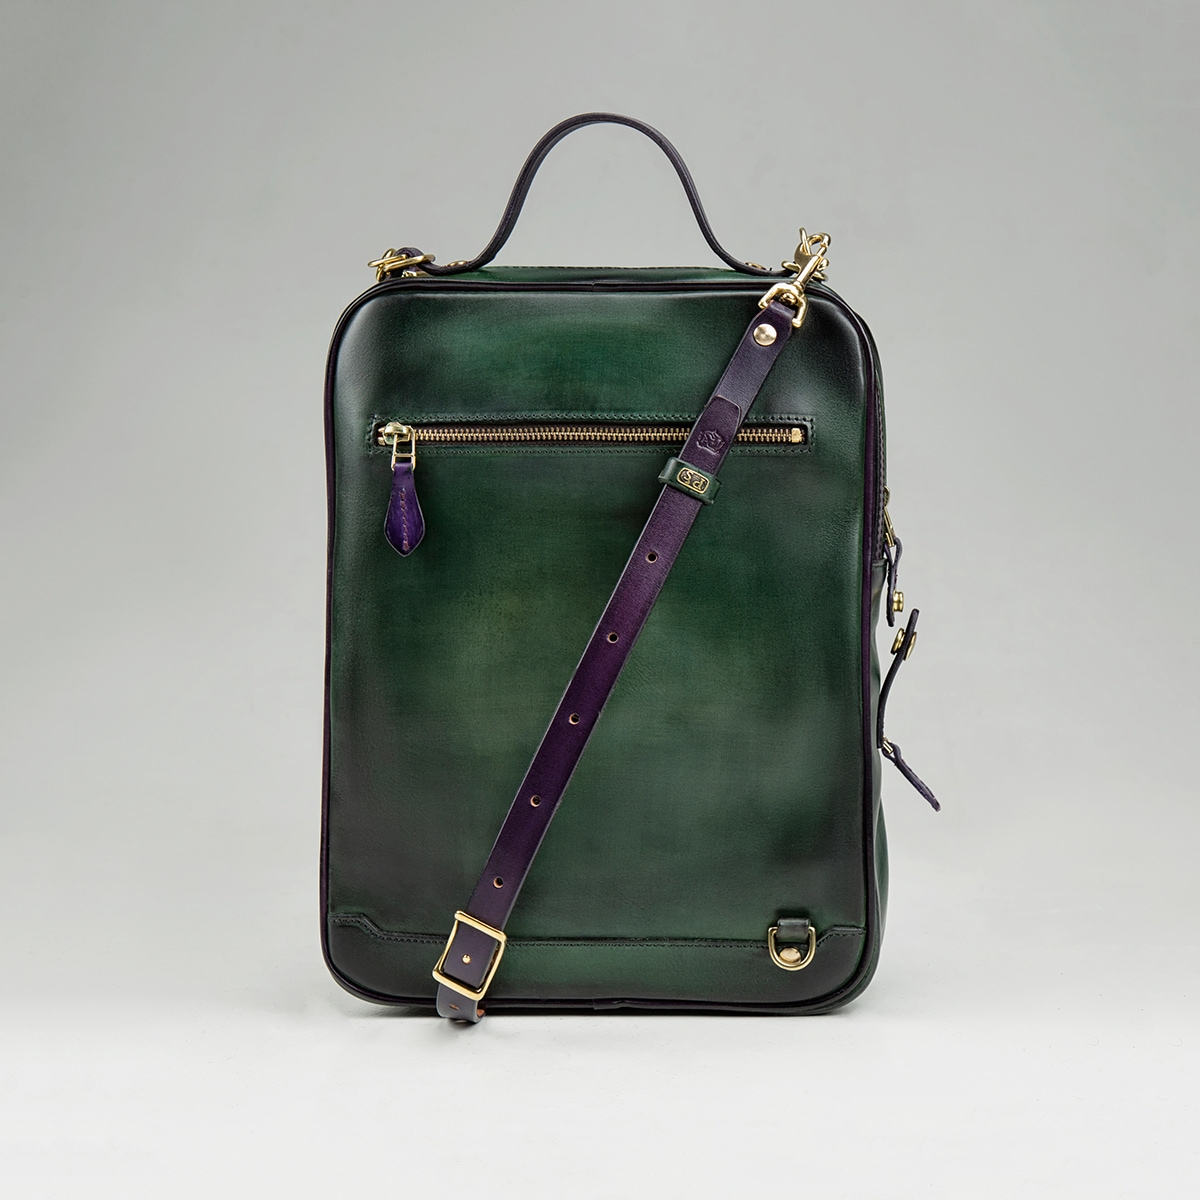 Crossbody bag-transformer CHELSEA violet ink & grassy green